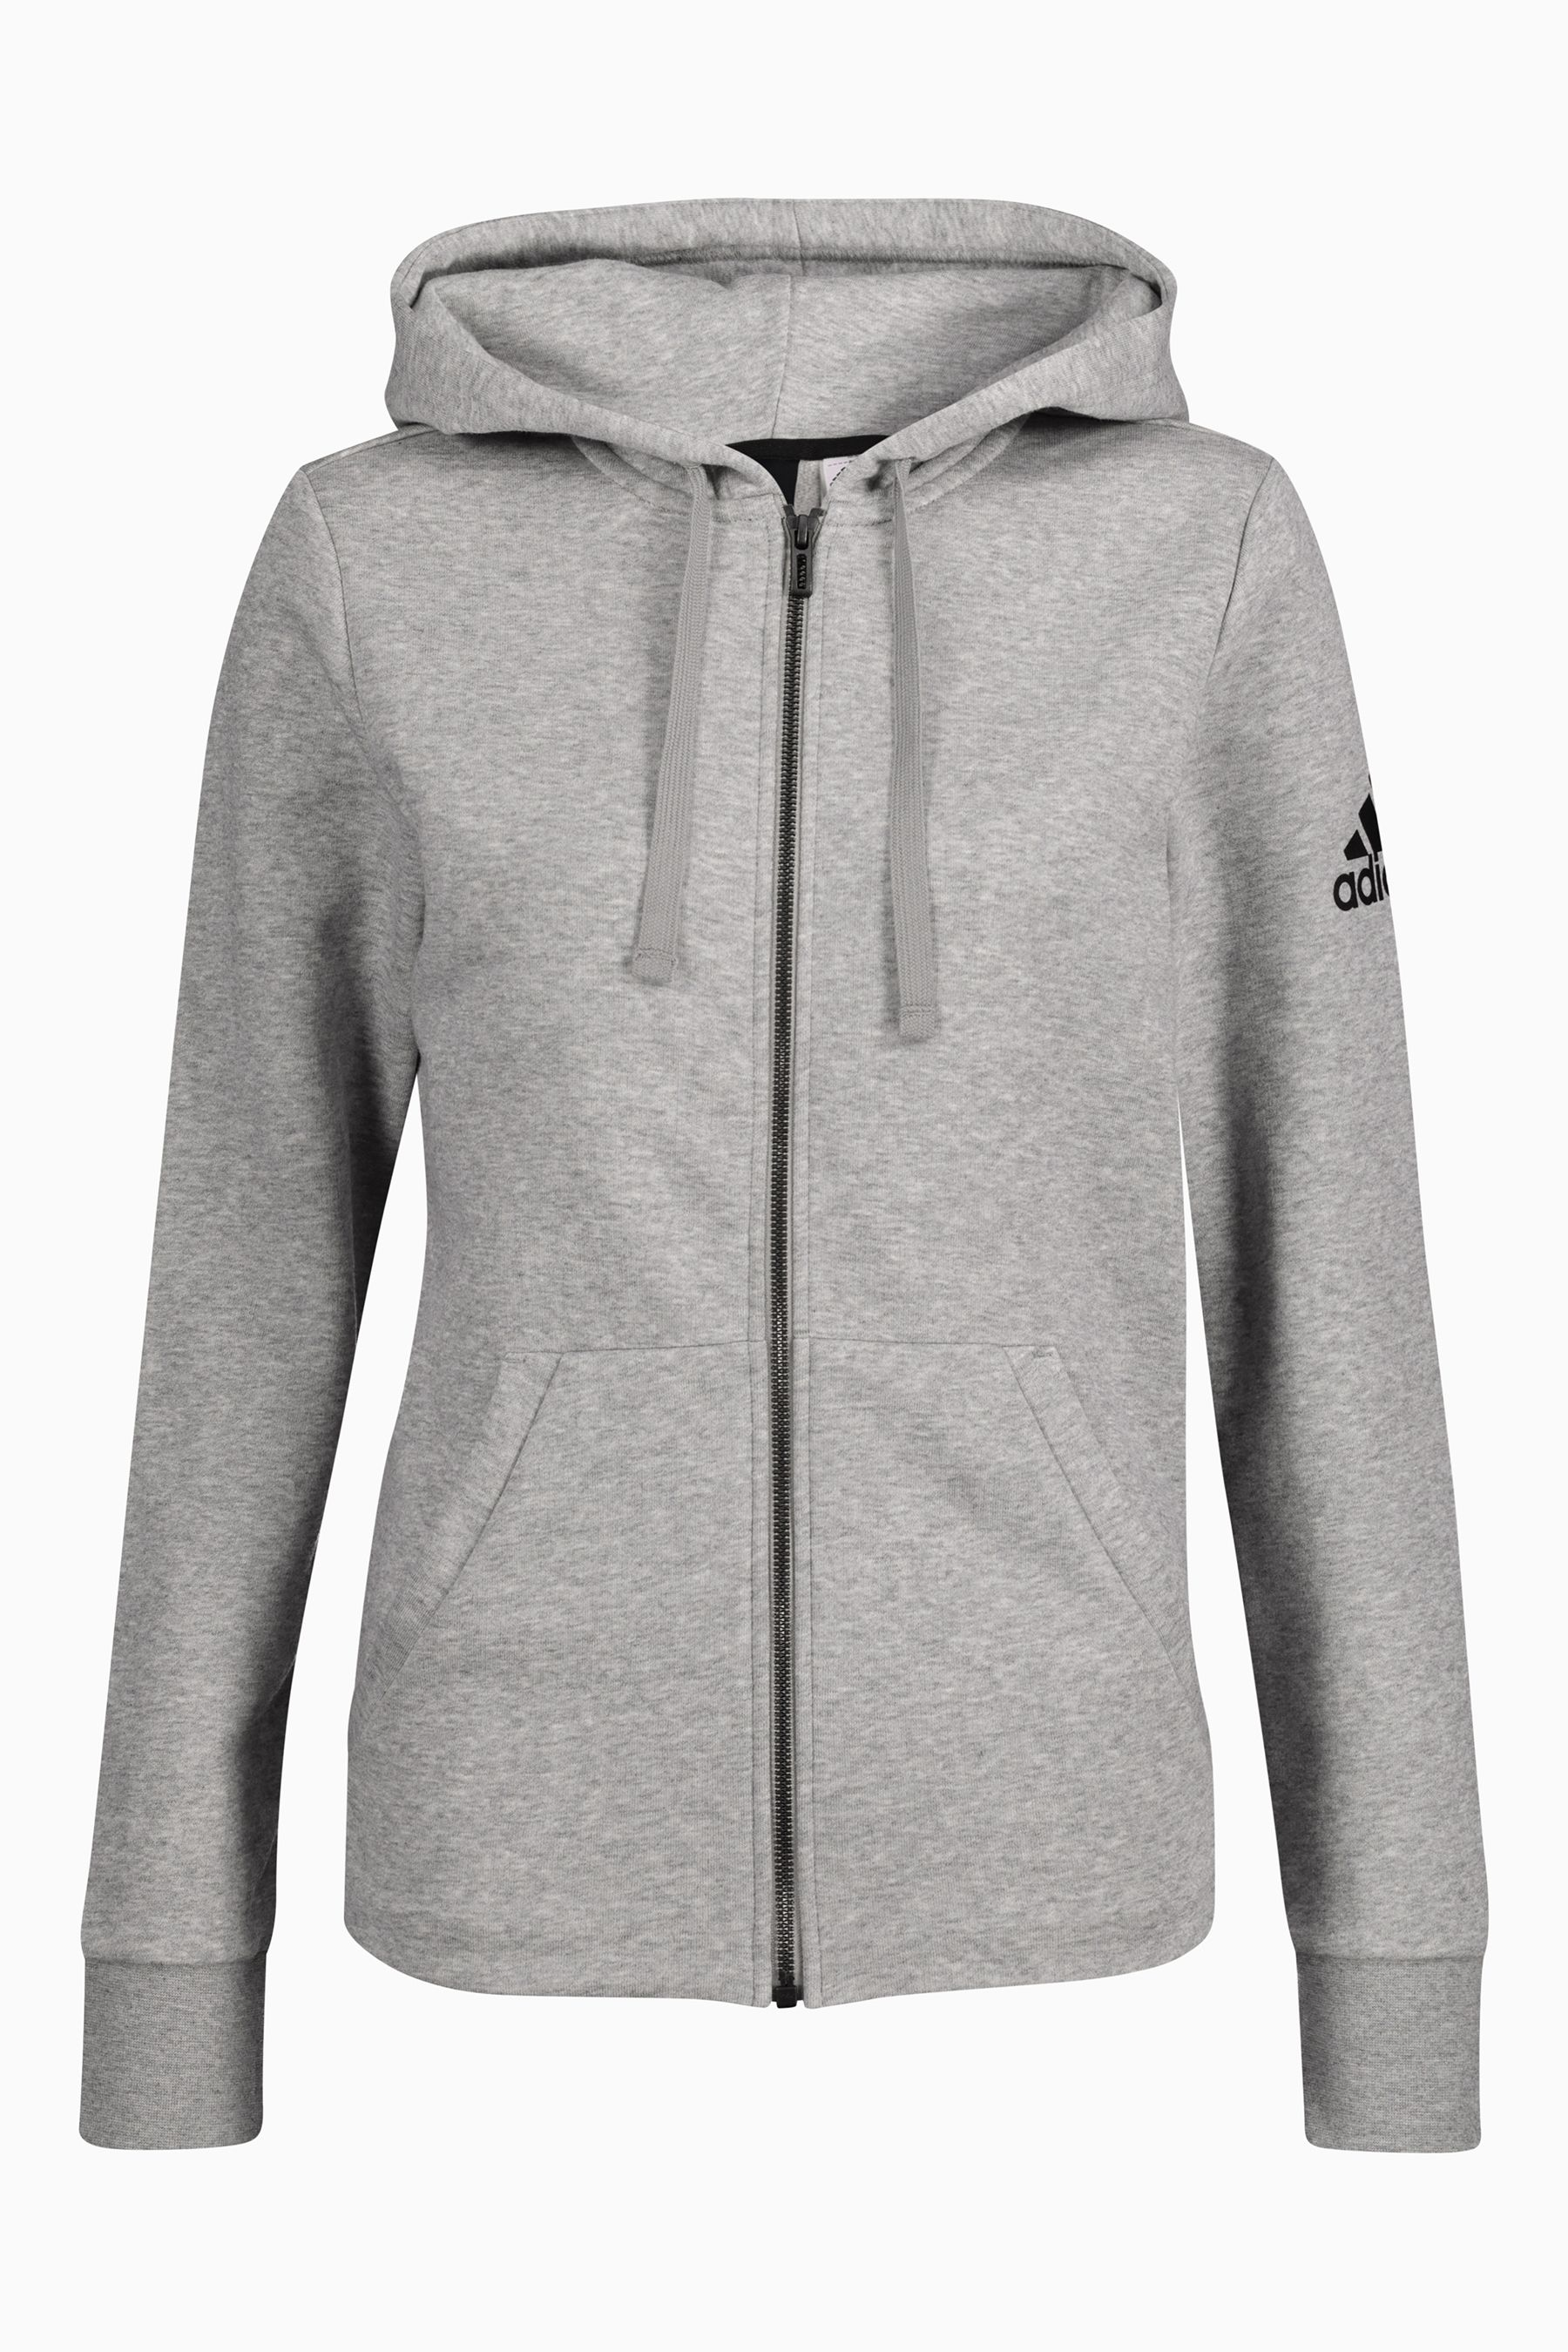 Womens adidas Grey Essential Solid Full Zip Hoody Grey